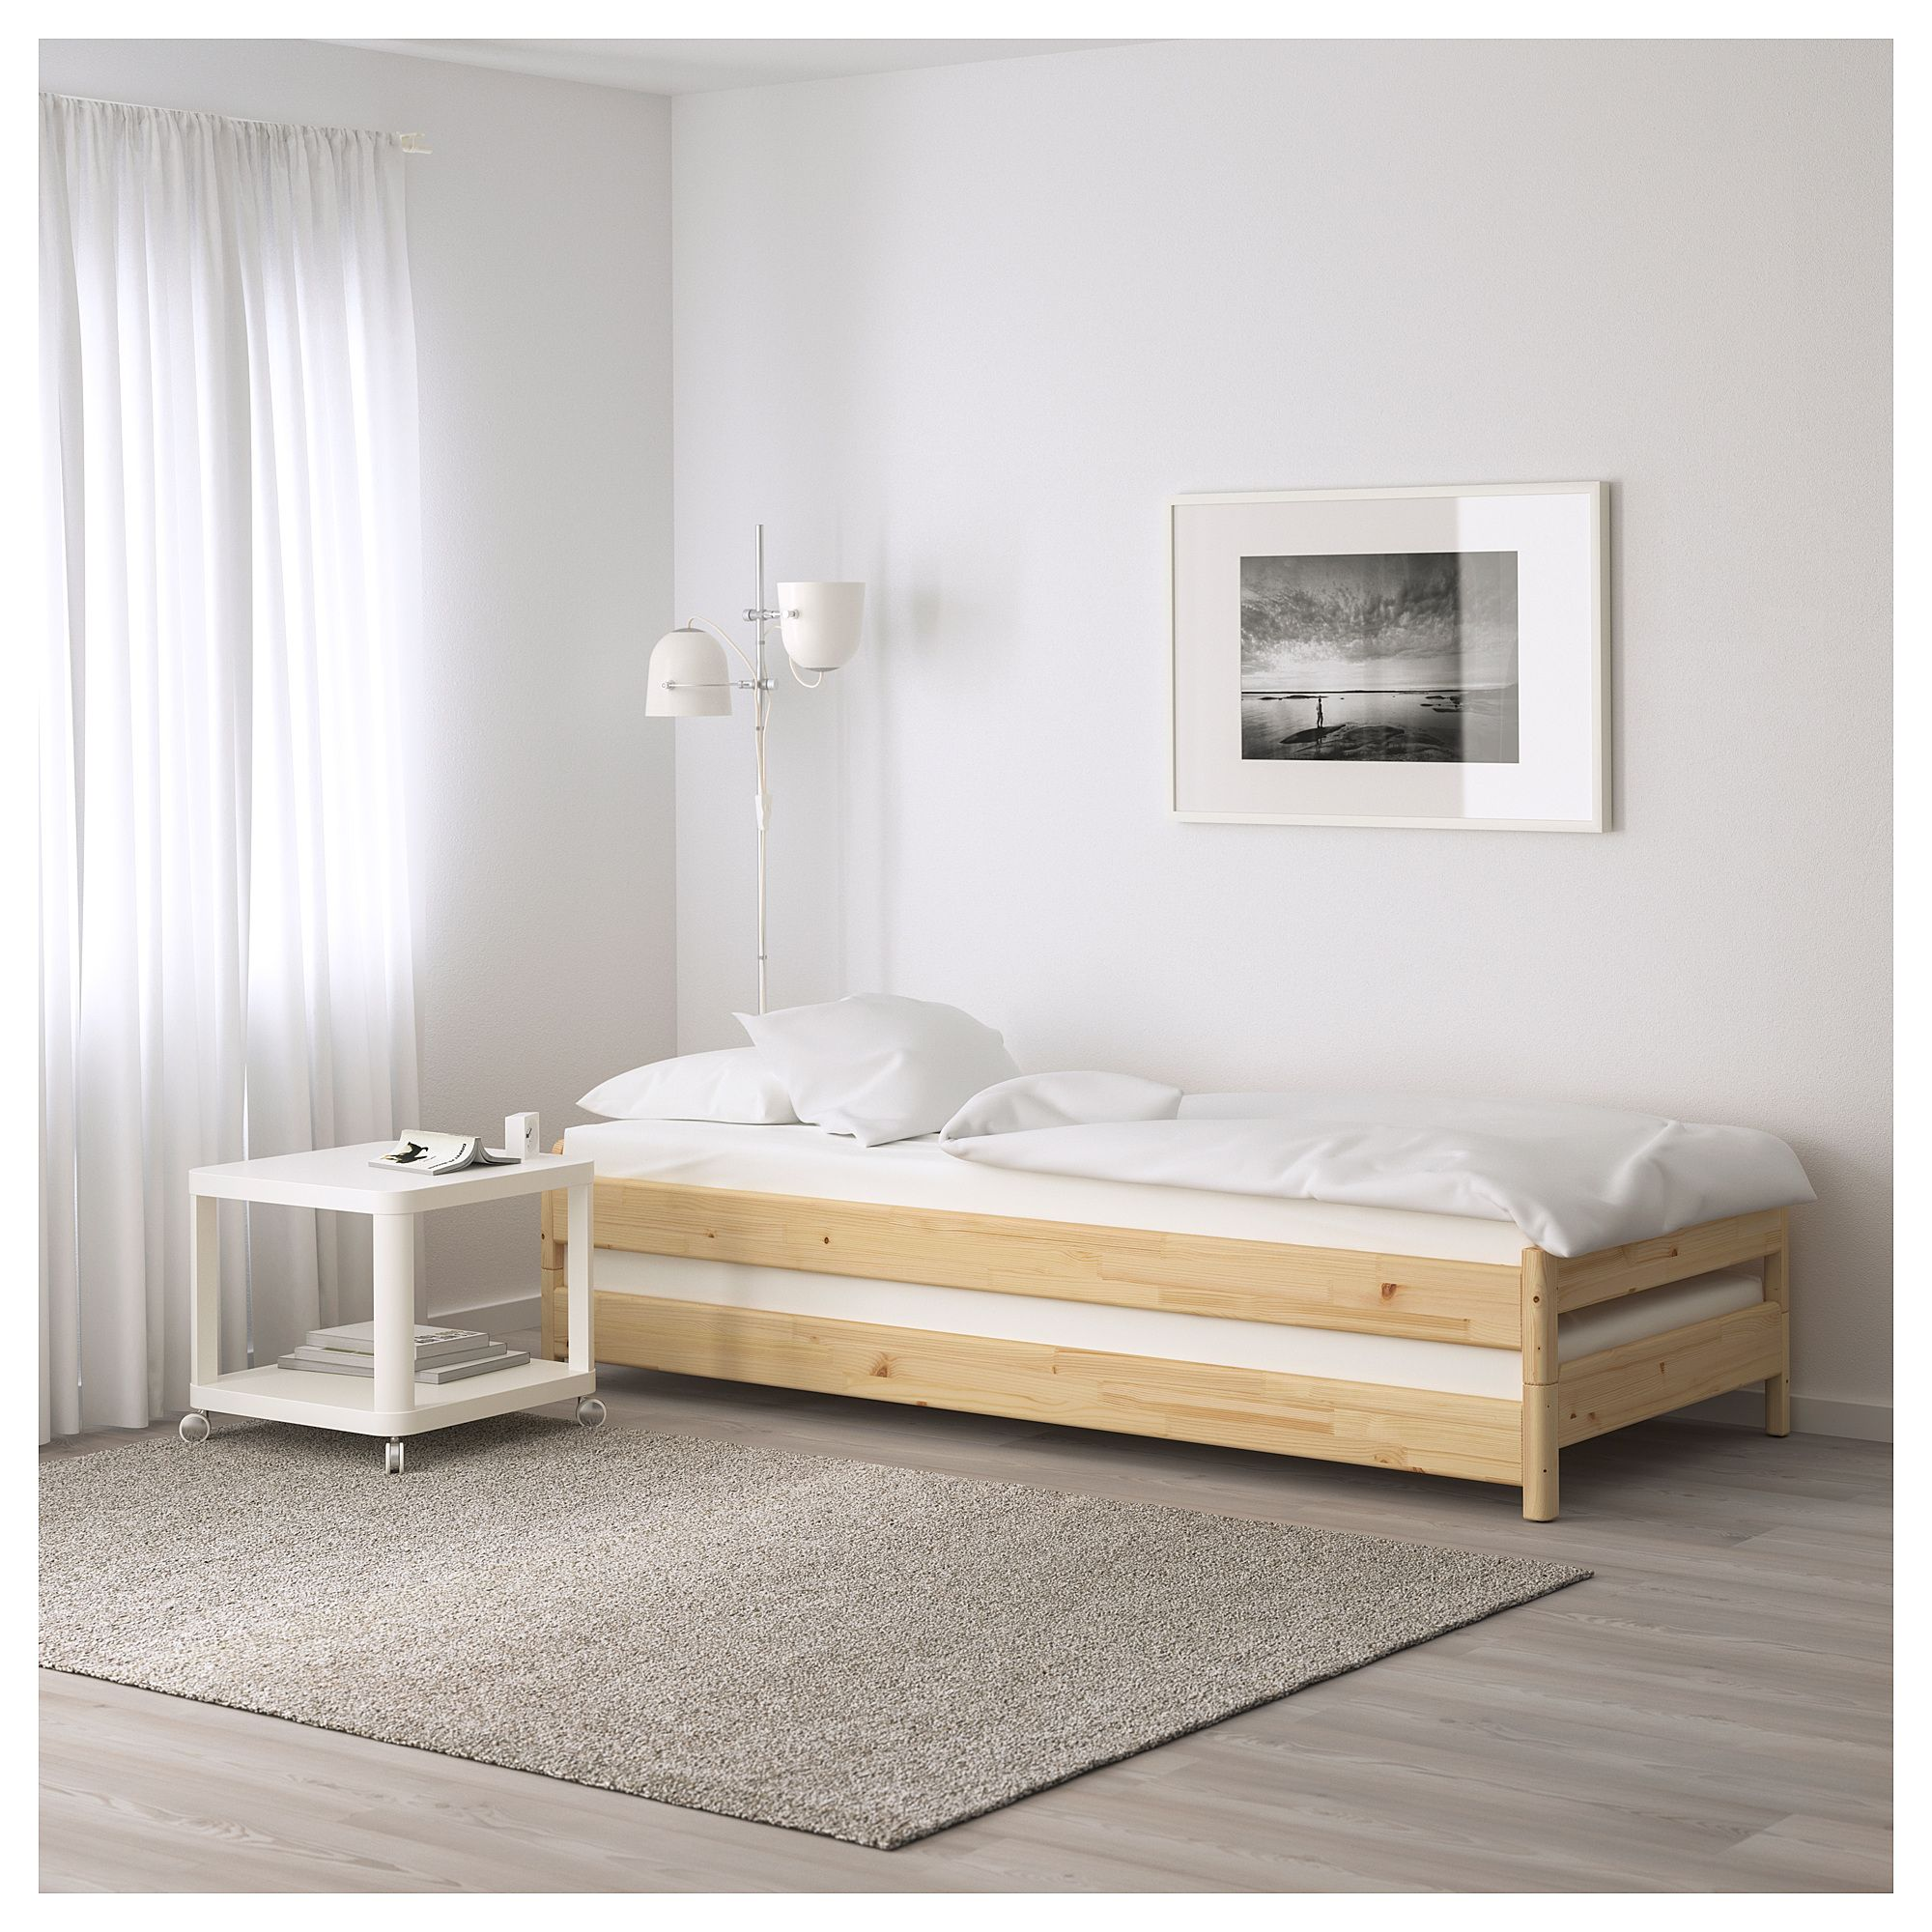 Stackable Twin Beds UtÅker Stackable Bed With 2 Mattresses Pine Meistervik Home